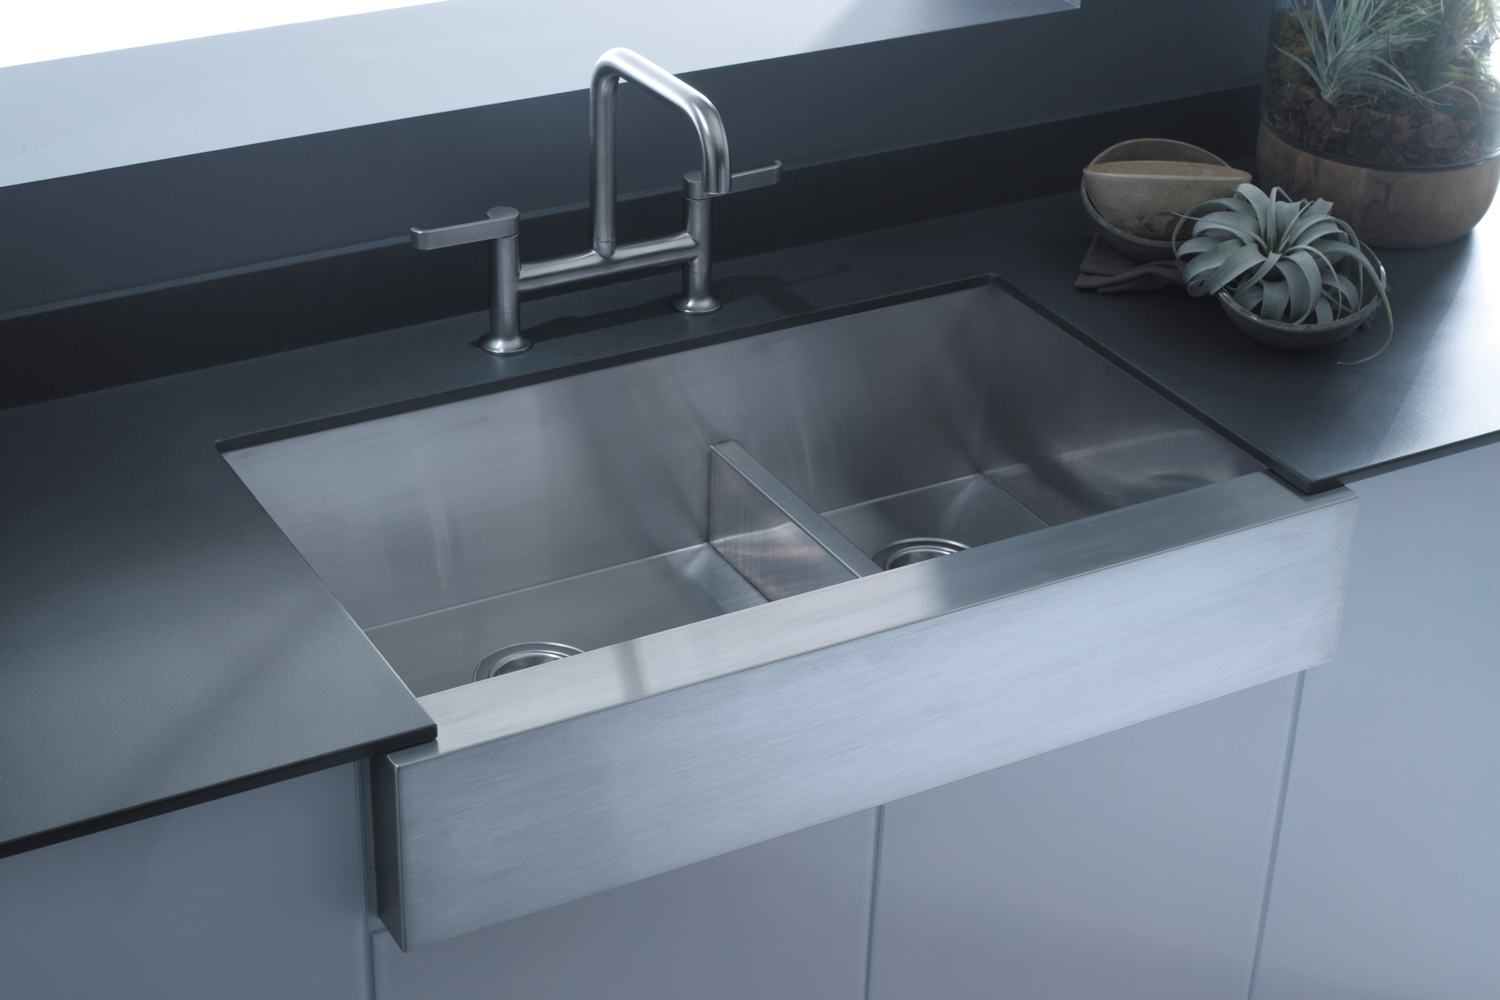 apron sink plus bridge faucet on kitchen cabinet with countertop for kitchen decor ideas